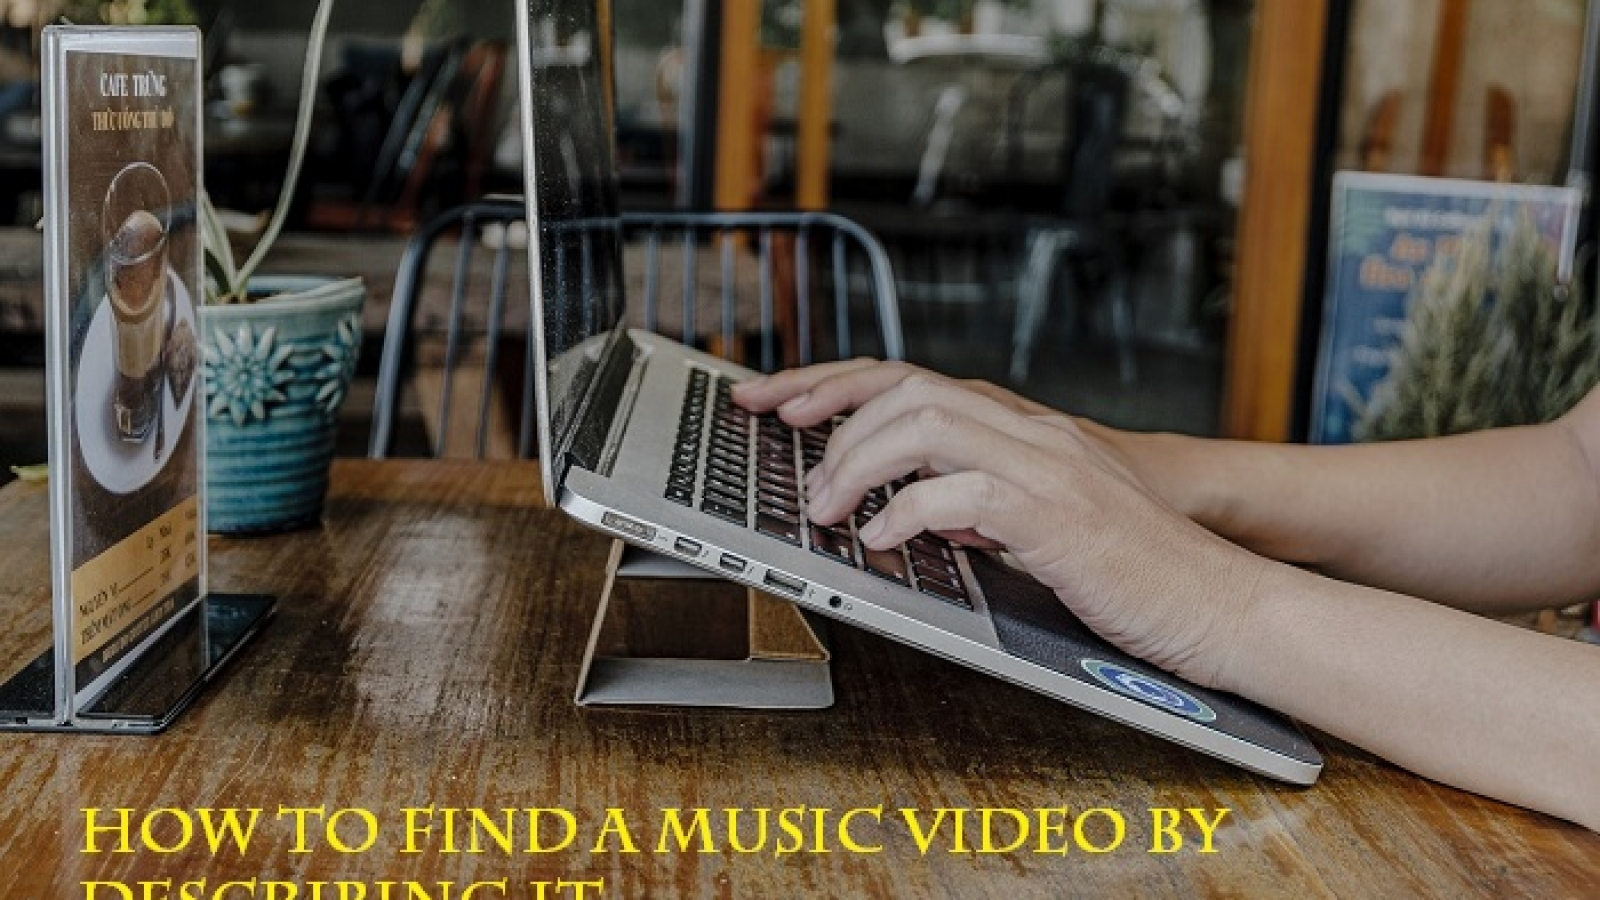 How to find a music video by describing it